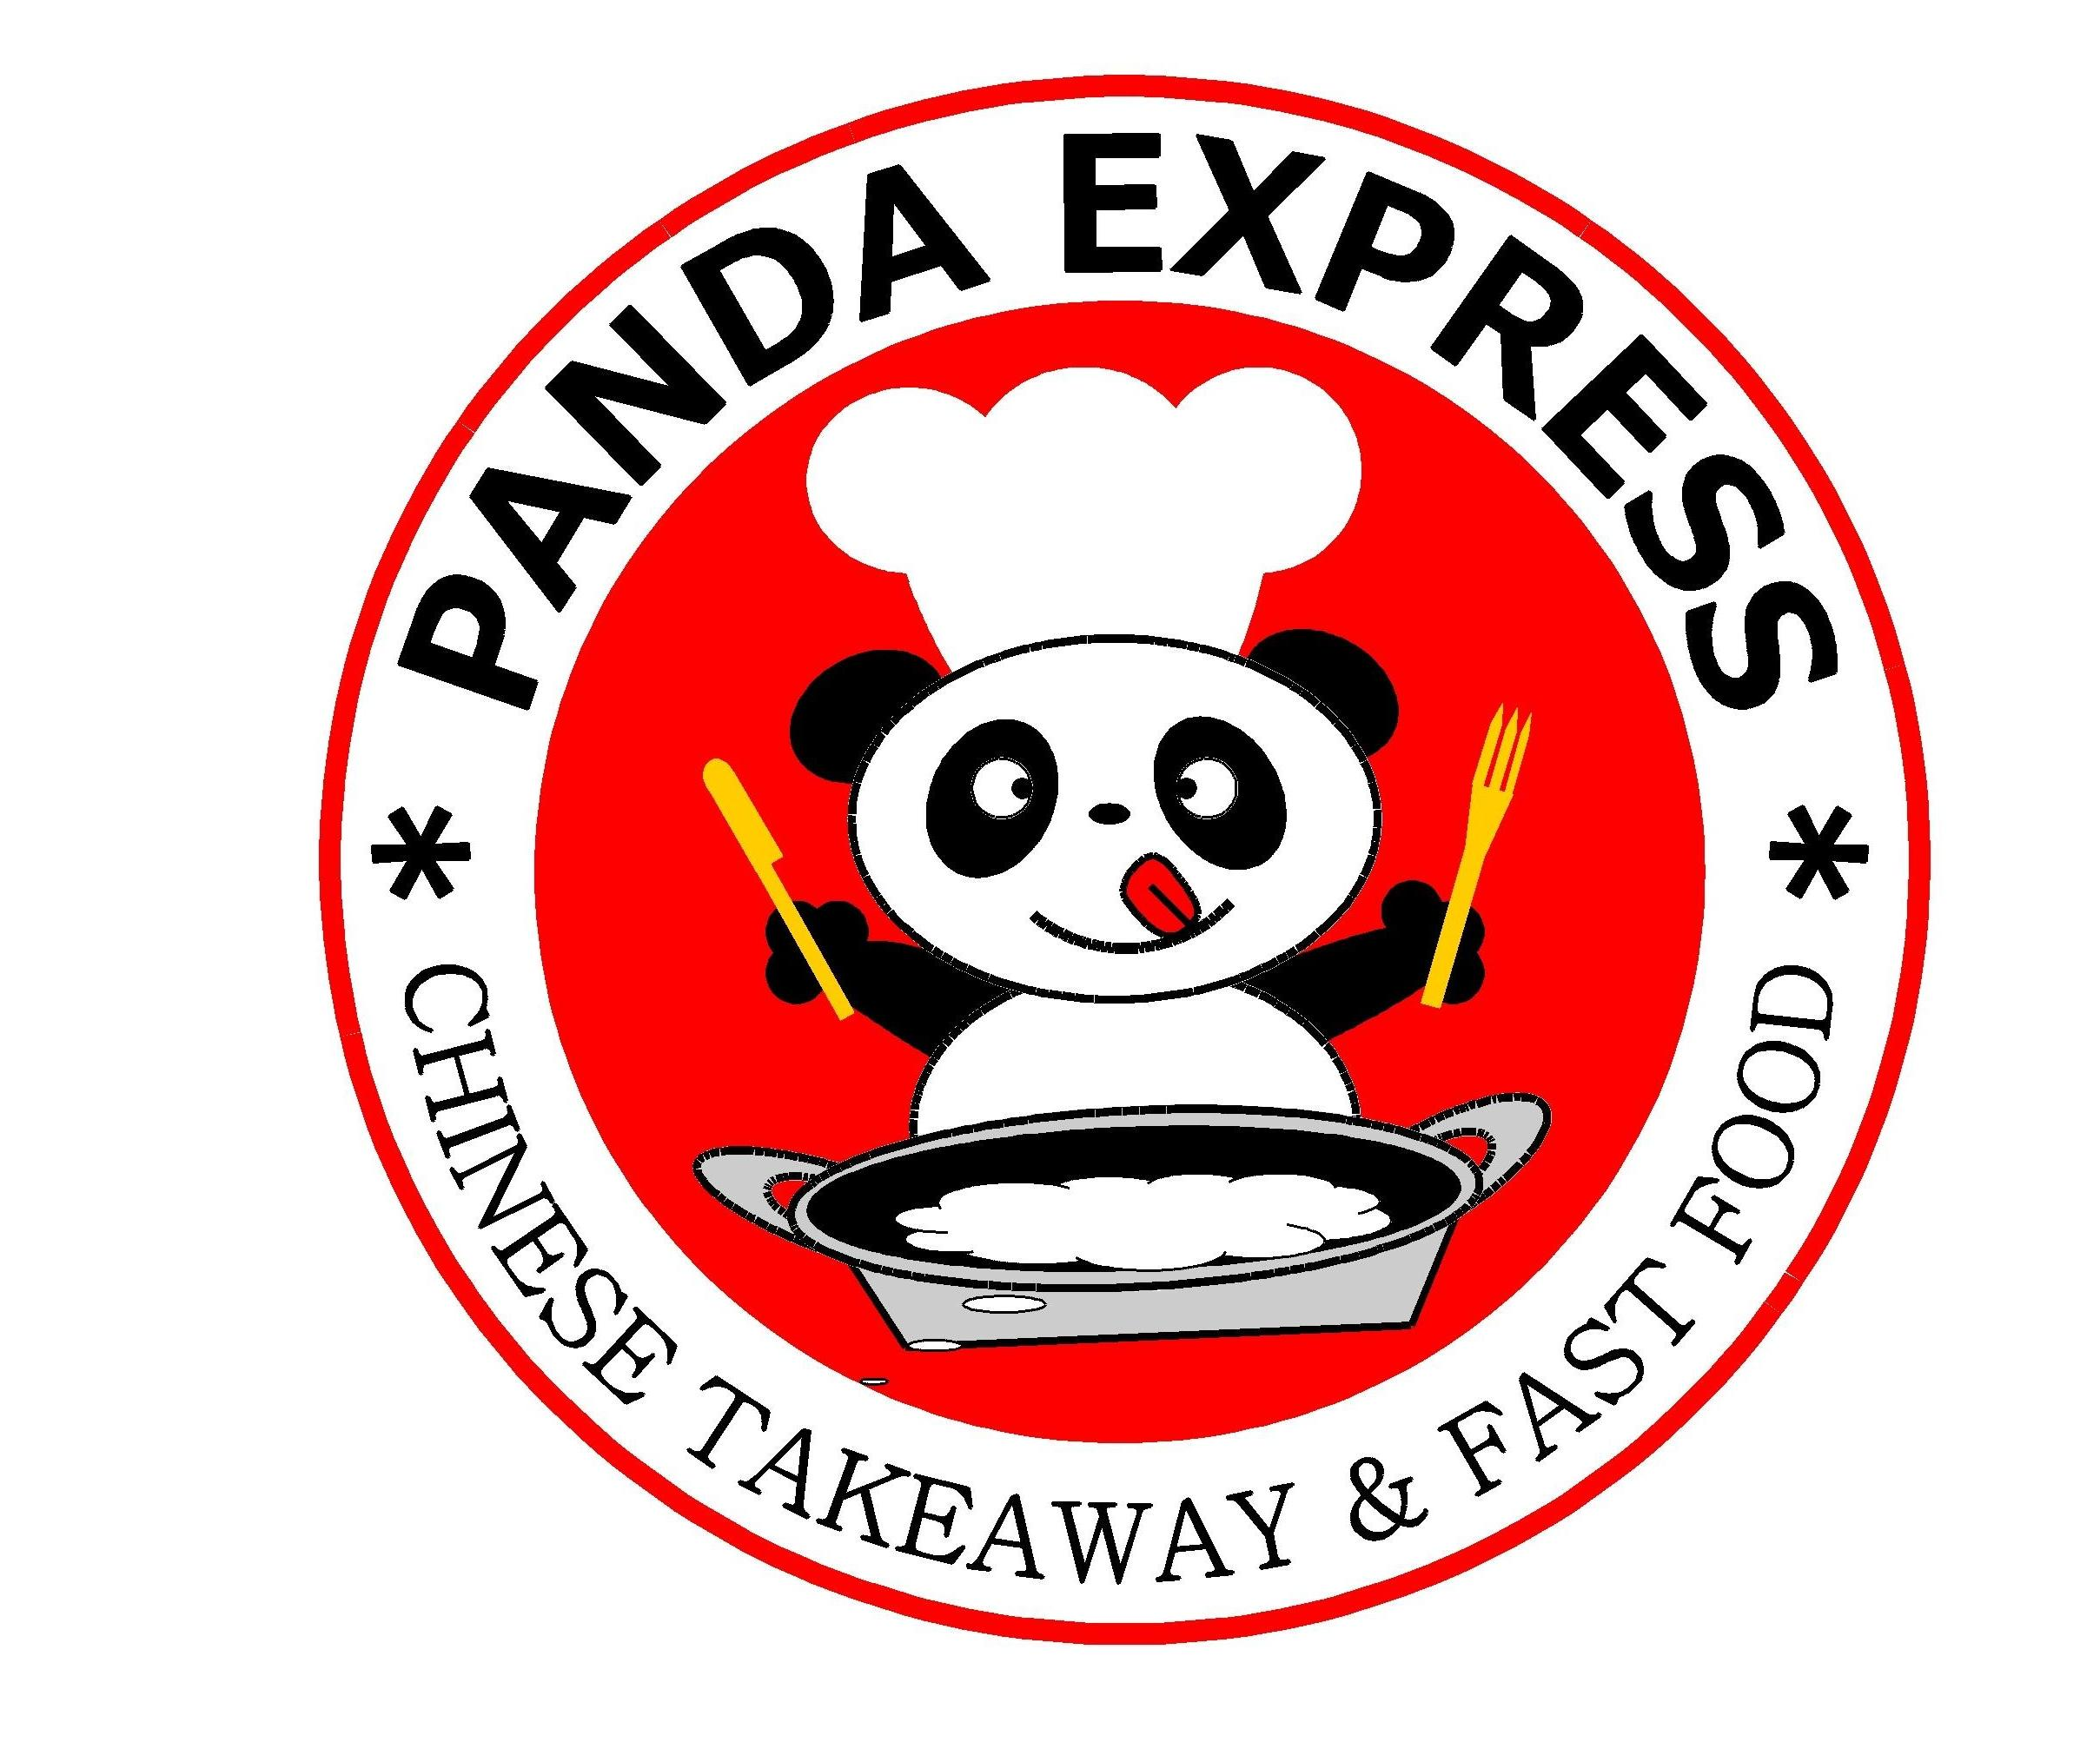 panda express dating policy The panda express survey should only take you a few minutes to complete and once you do complete the survey, you'll be presented with a code to get a panda express free entree write this code down on your receipt and bring it back to panda express to claim your free meal.